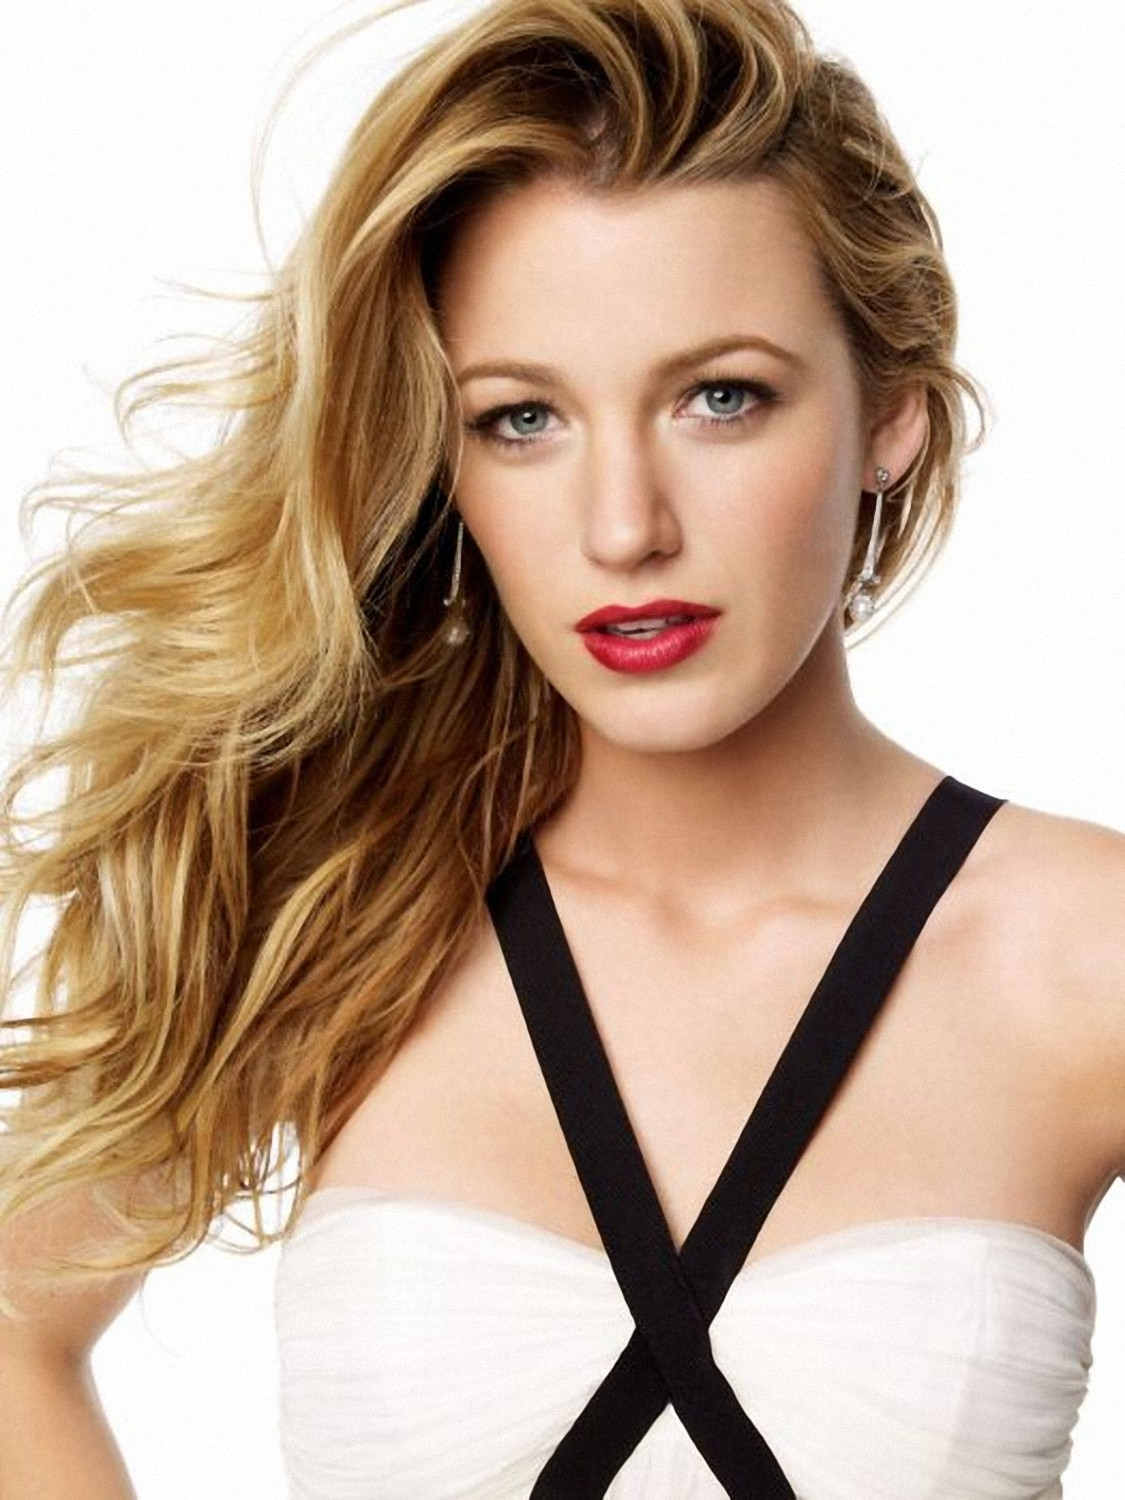 Blake Lively Height Weight Age Bra Size Affairs Body Stats